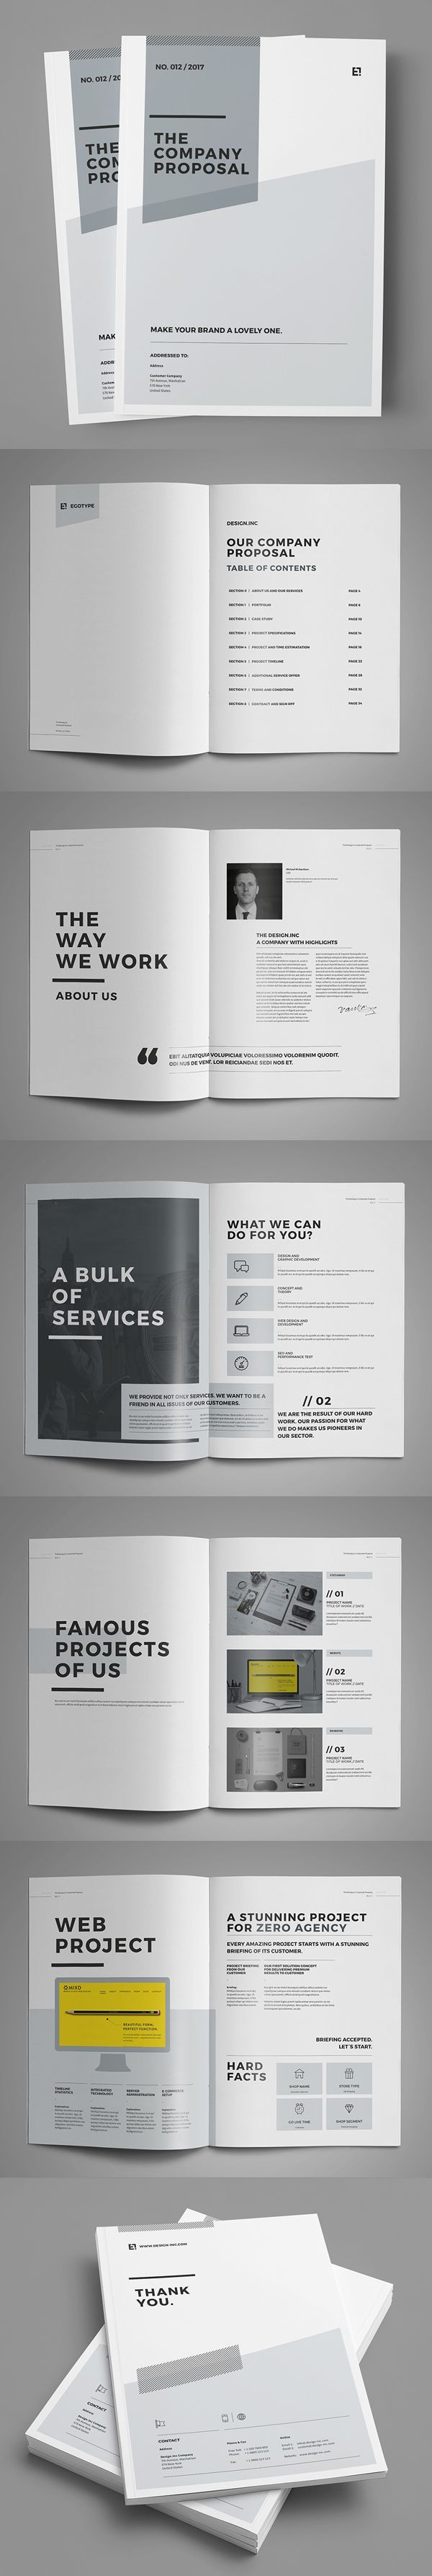 Minimal and Professional Proposal Brochure Template | LAYOUT ...